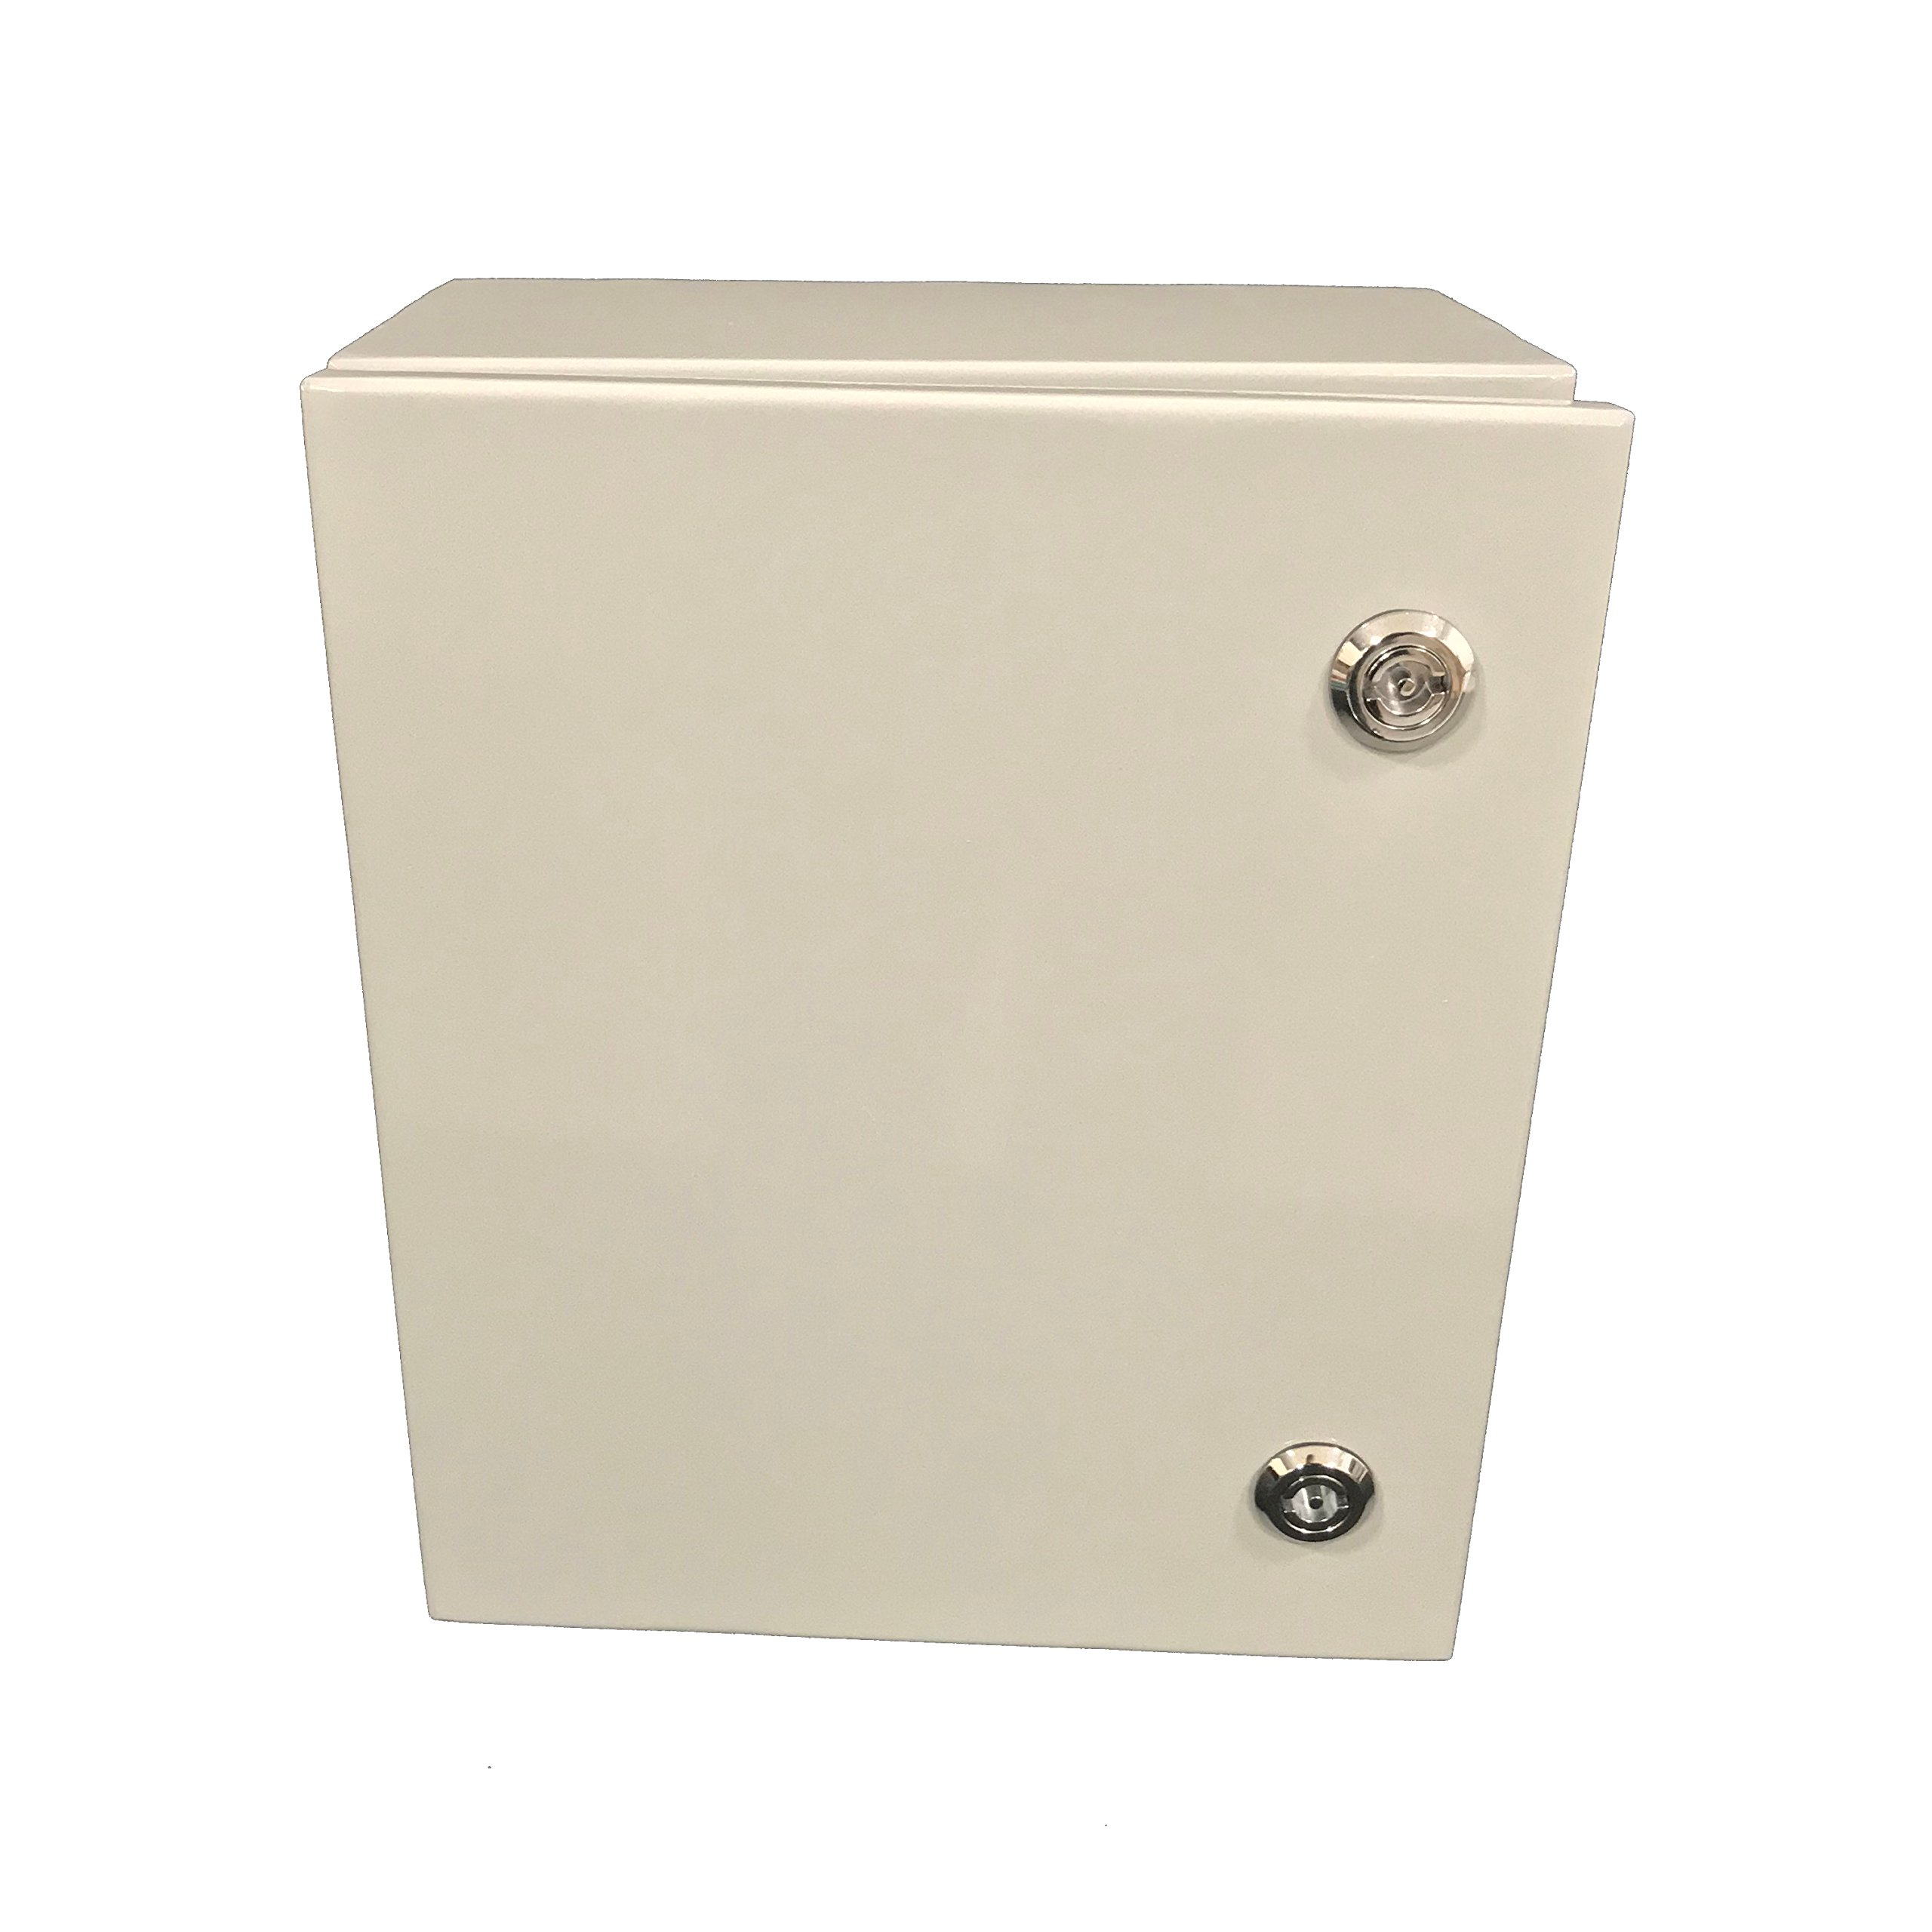 Bud Industries Stainless Steel Box- SNB Series NEMA 4 Electronic Box, Hard Shell, Water Tight Hardware for Electrical Applications. Industrial Steel Enclosure